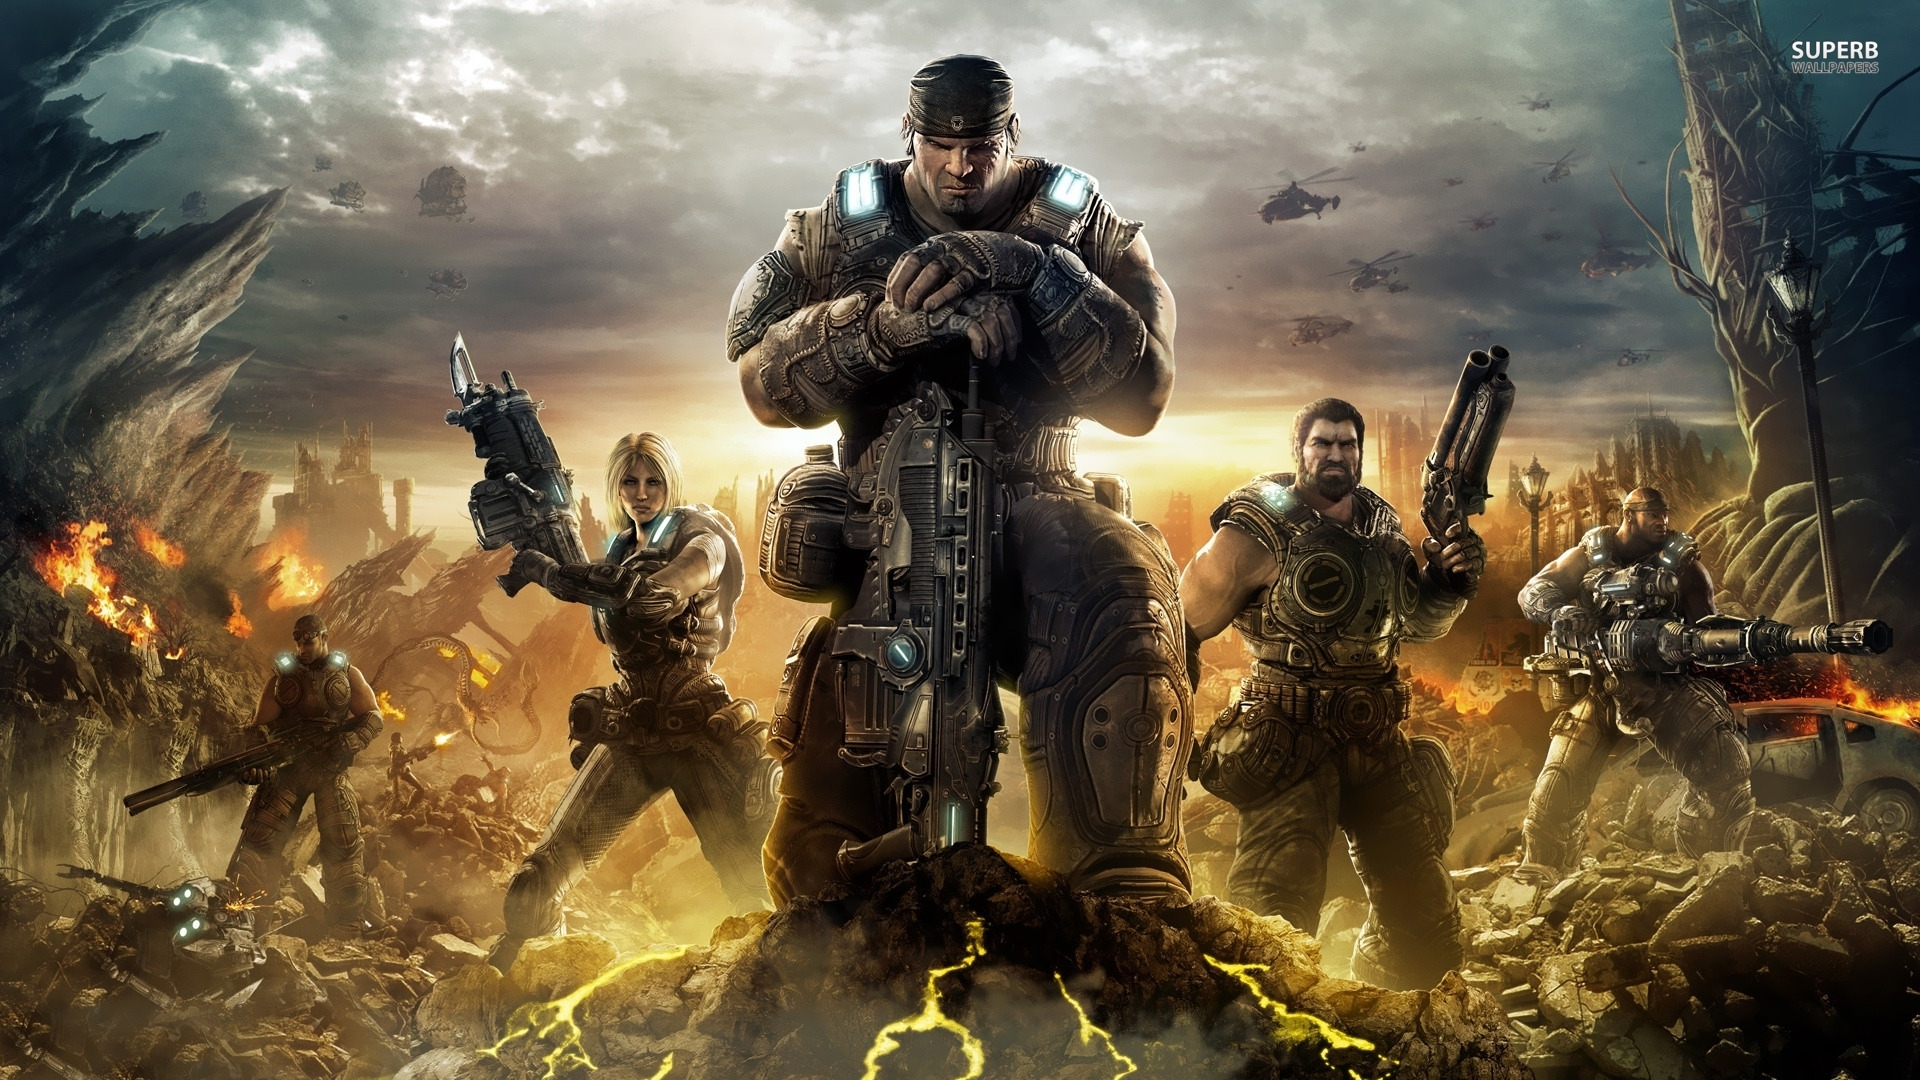 xbox one] forcément, un gears of war hd-remaster-2.0-2015-top-génial